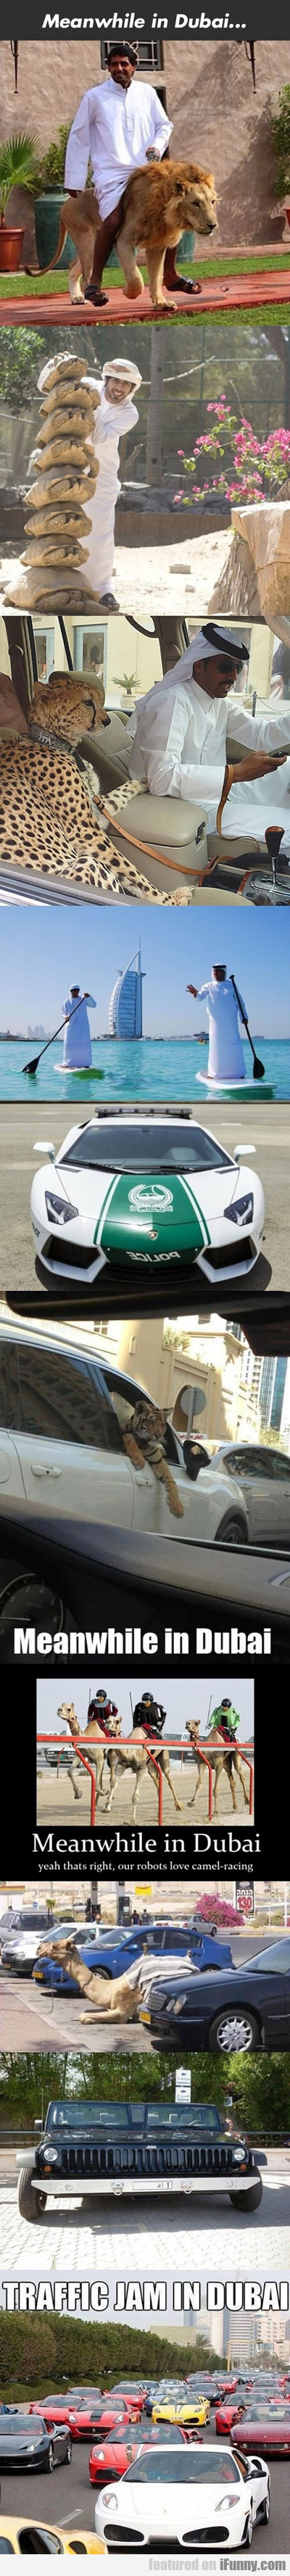 Meanwhile In Dubai...